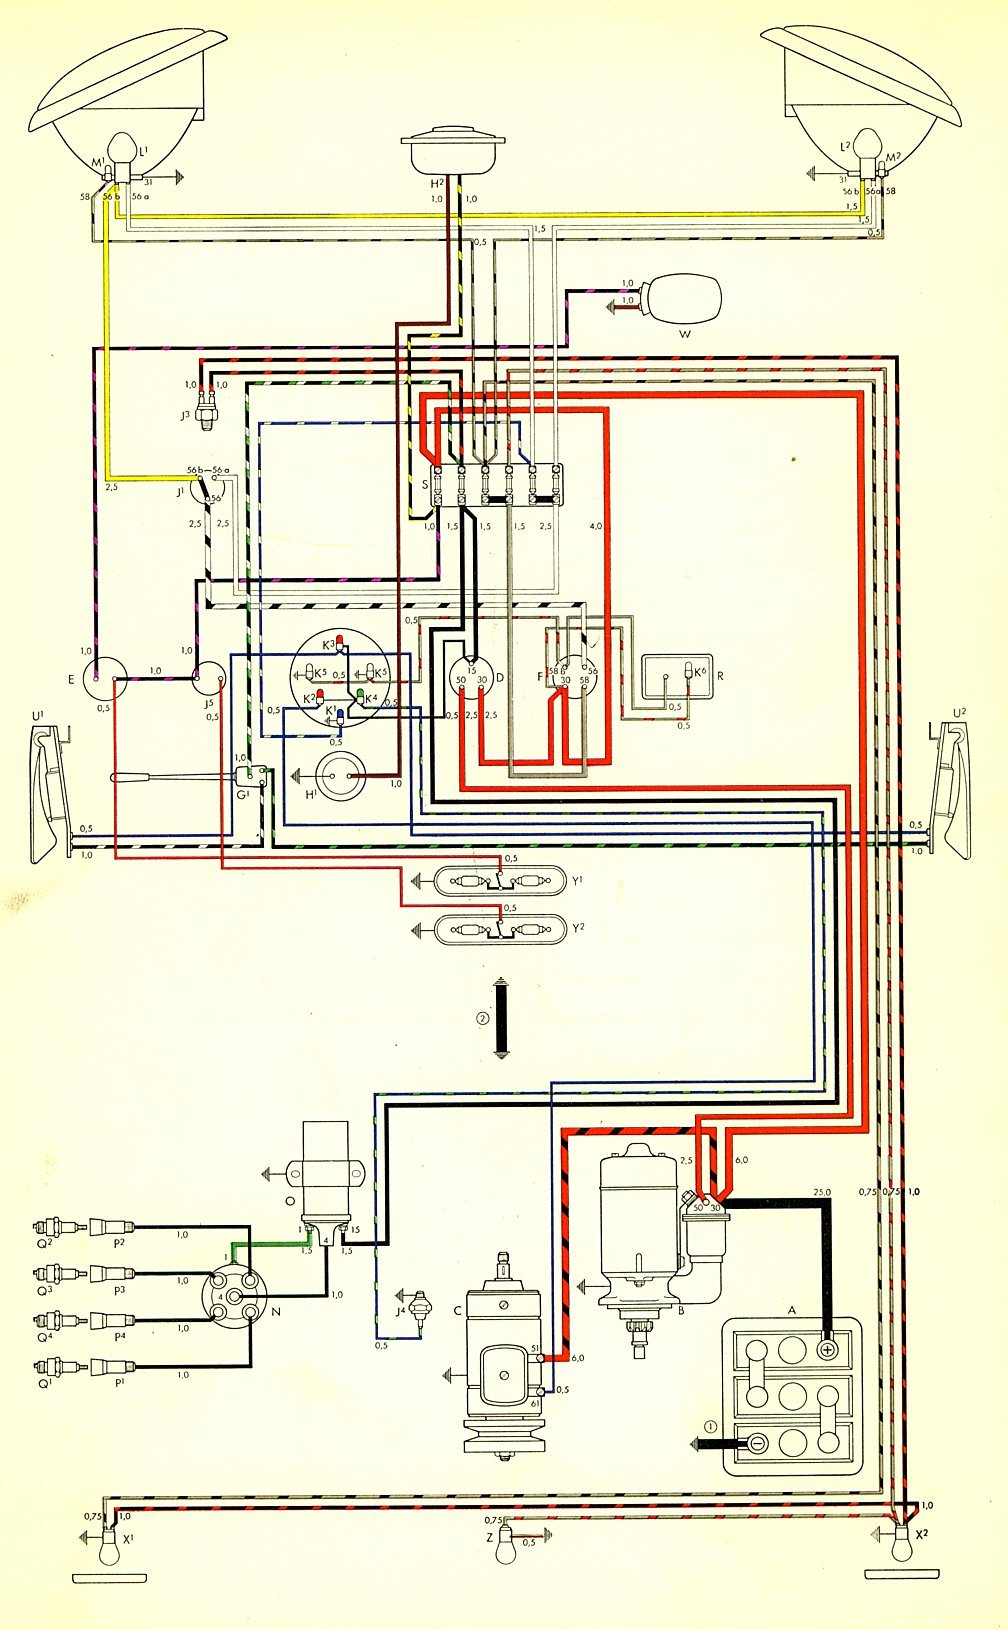 bus_59 bus wiring diagram vw wiring harness diagram \u2022 wiring diagrams j 1971 vw bus wiring diagram at bakdesigns.co